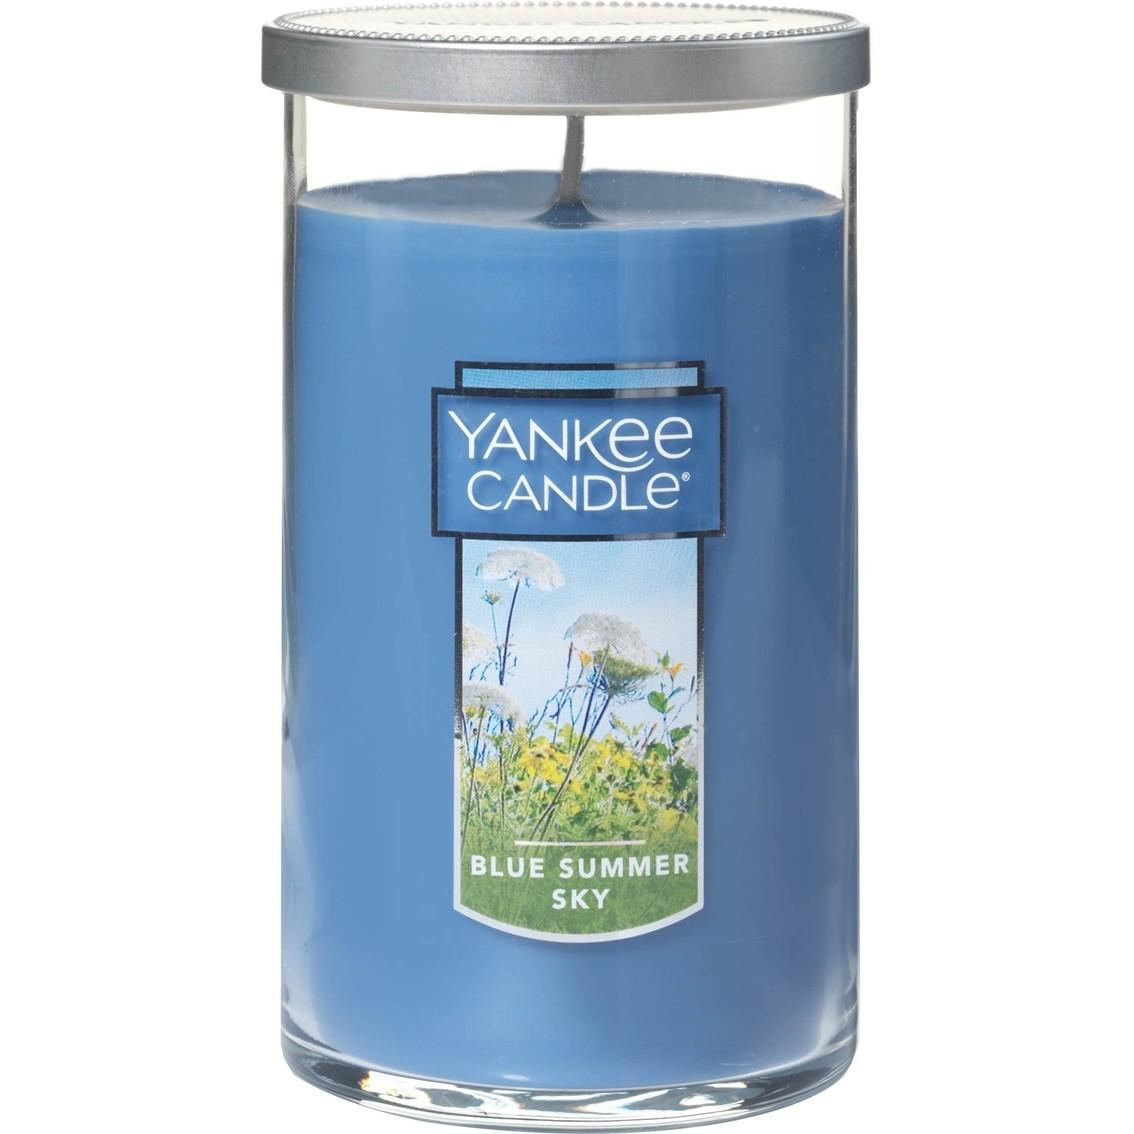 Yankee Candle Blue Summer Sky Medium Perfect Pillar